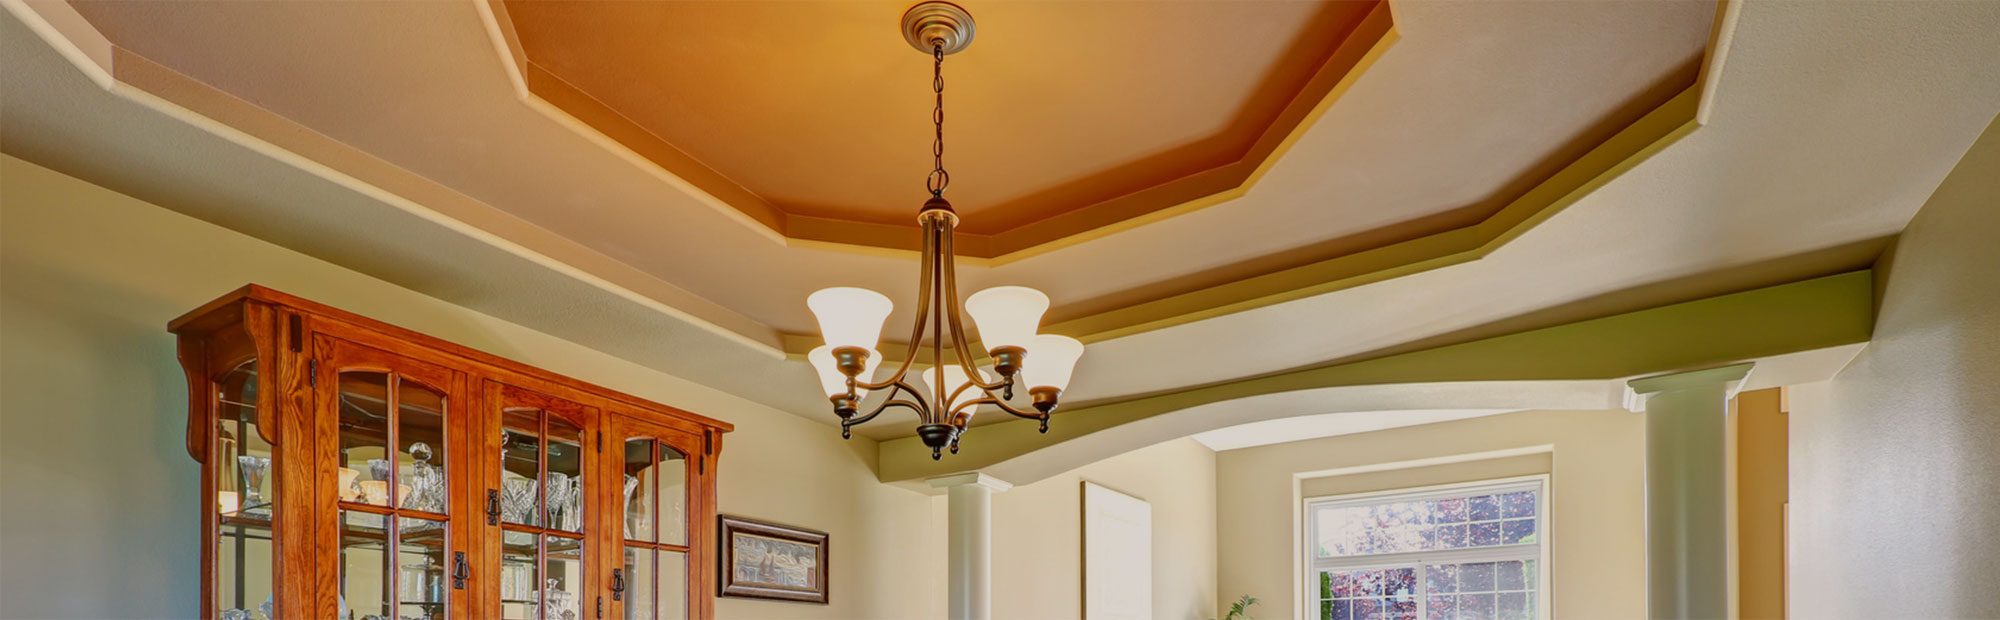 ceiling installers Perth - ceiling replacement cost - ceiling replacement perth